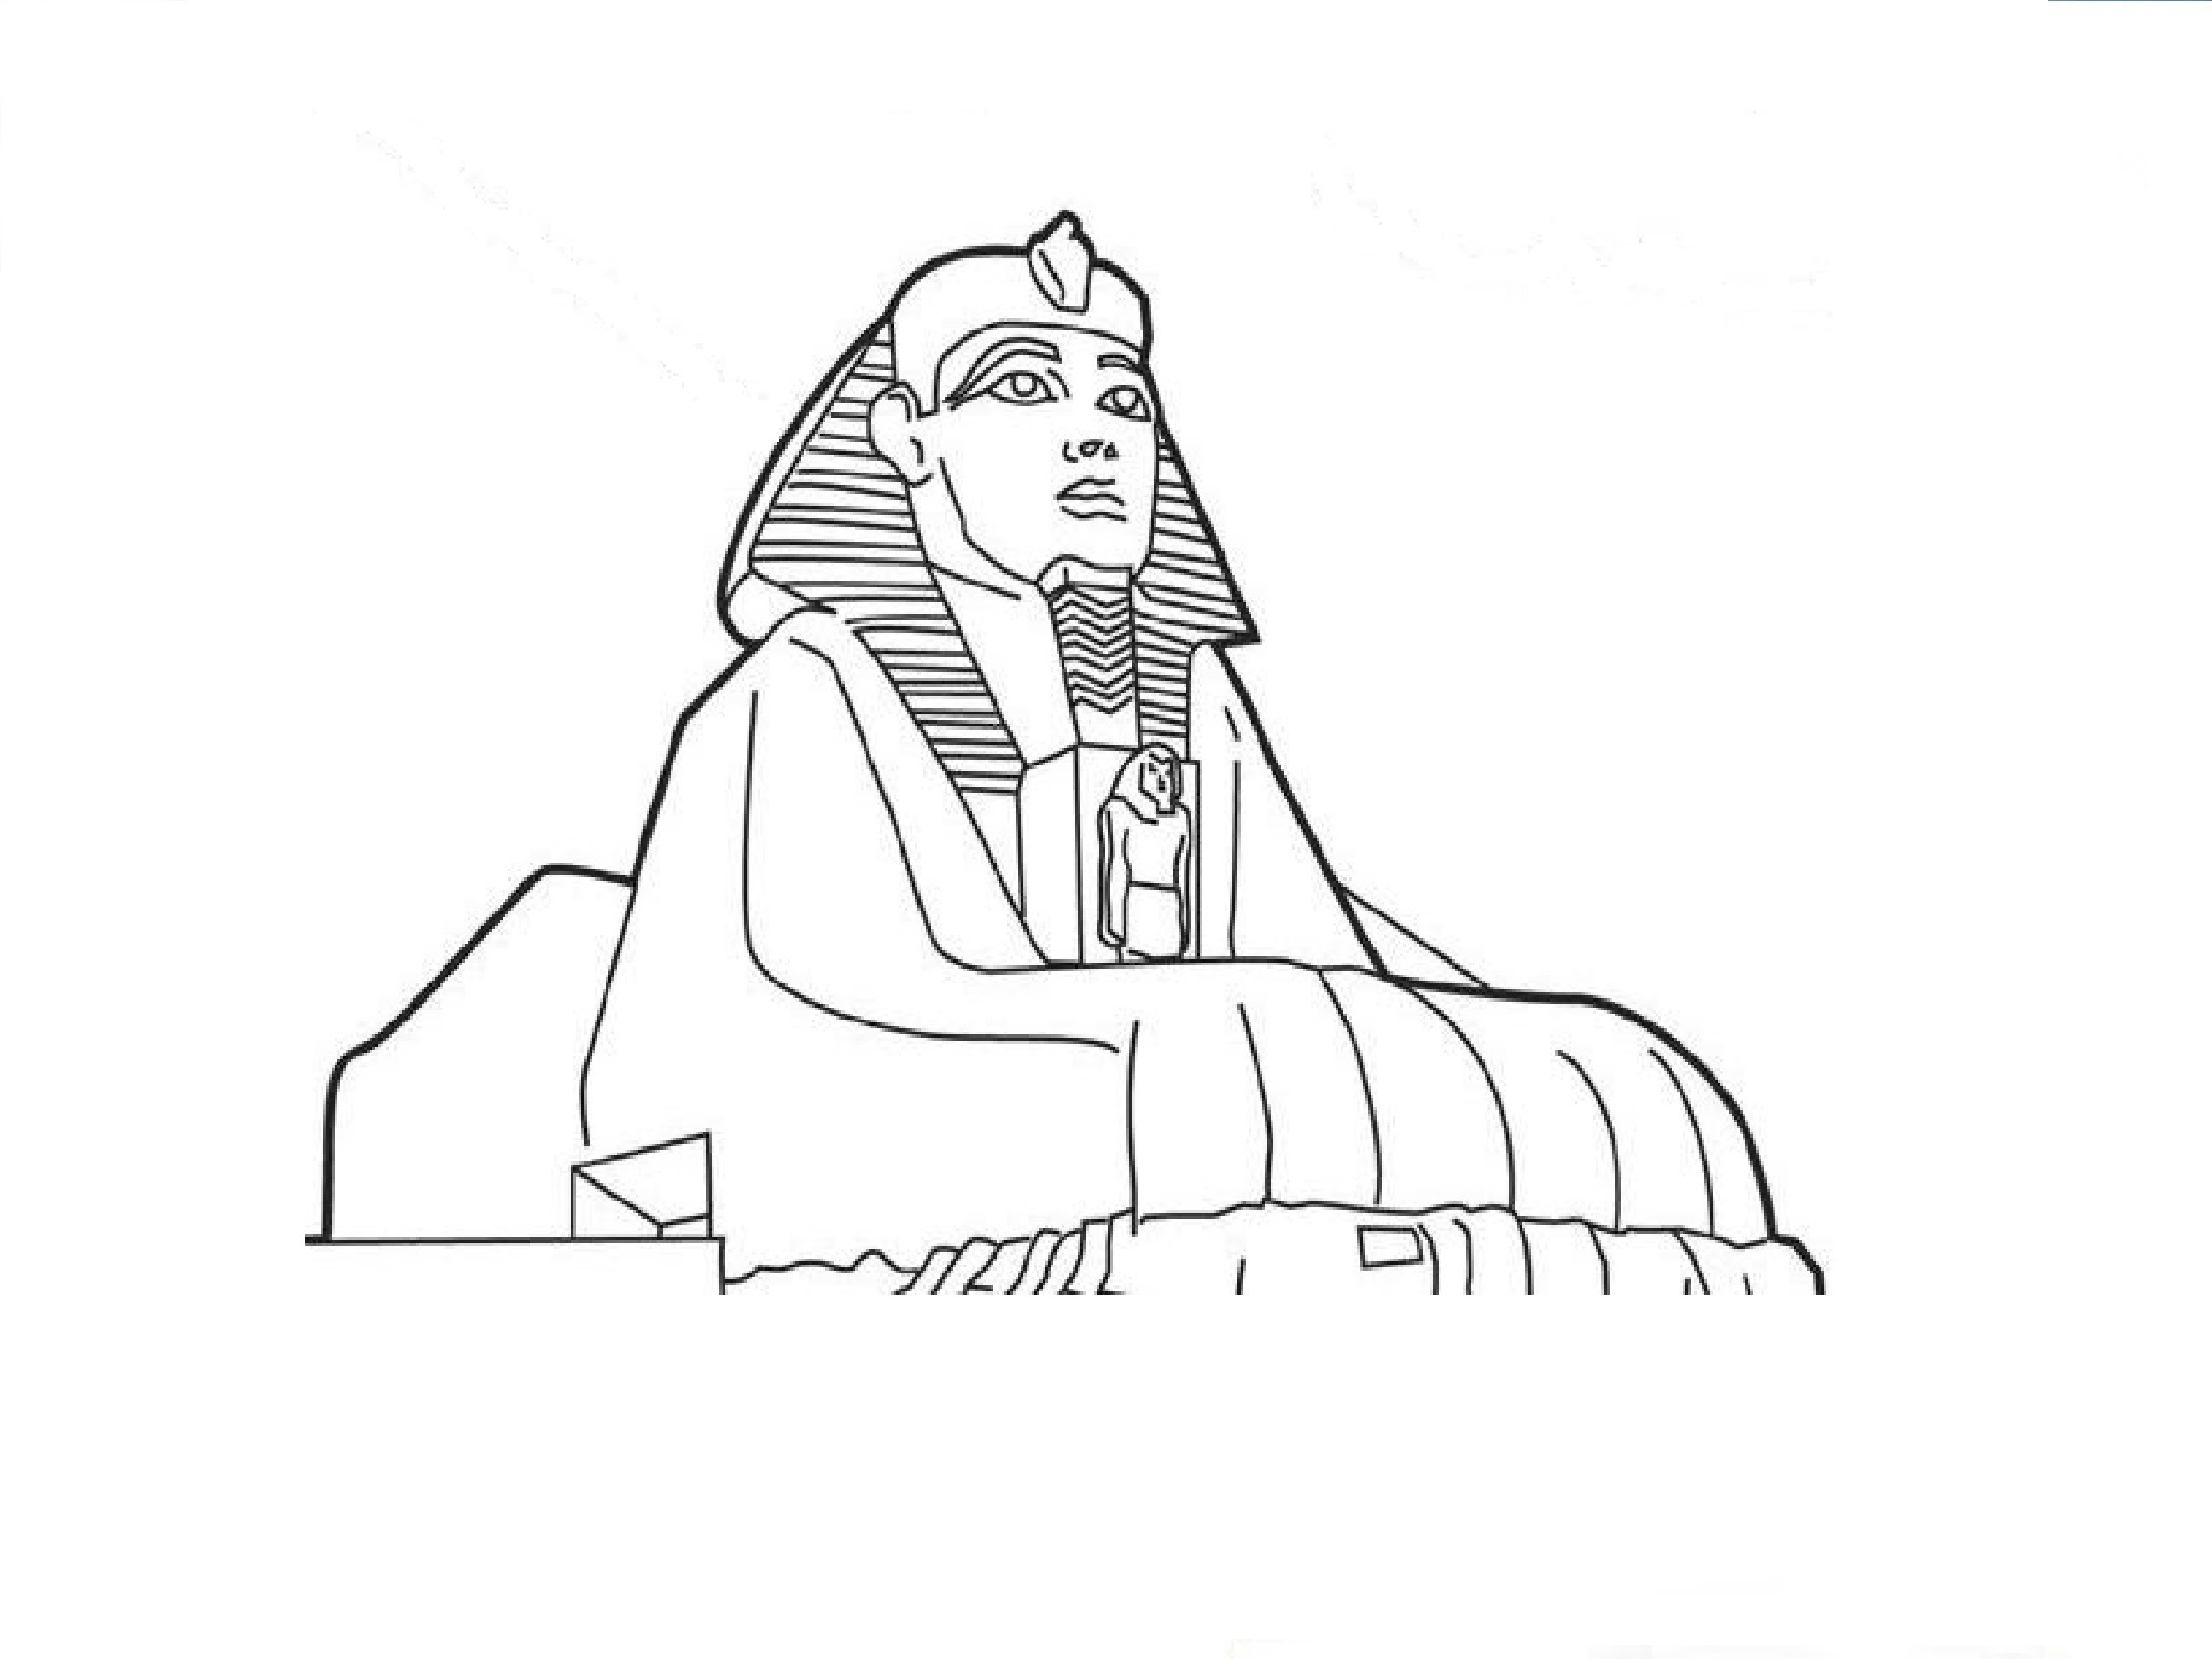 2592x1944 How to Draw the Sphinx Êàê íàðèñîâàòü Ñôèíêñà